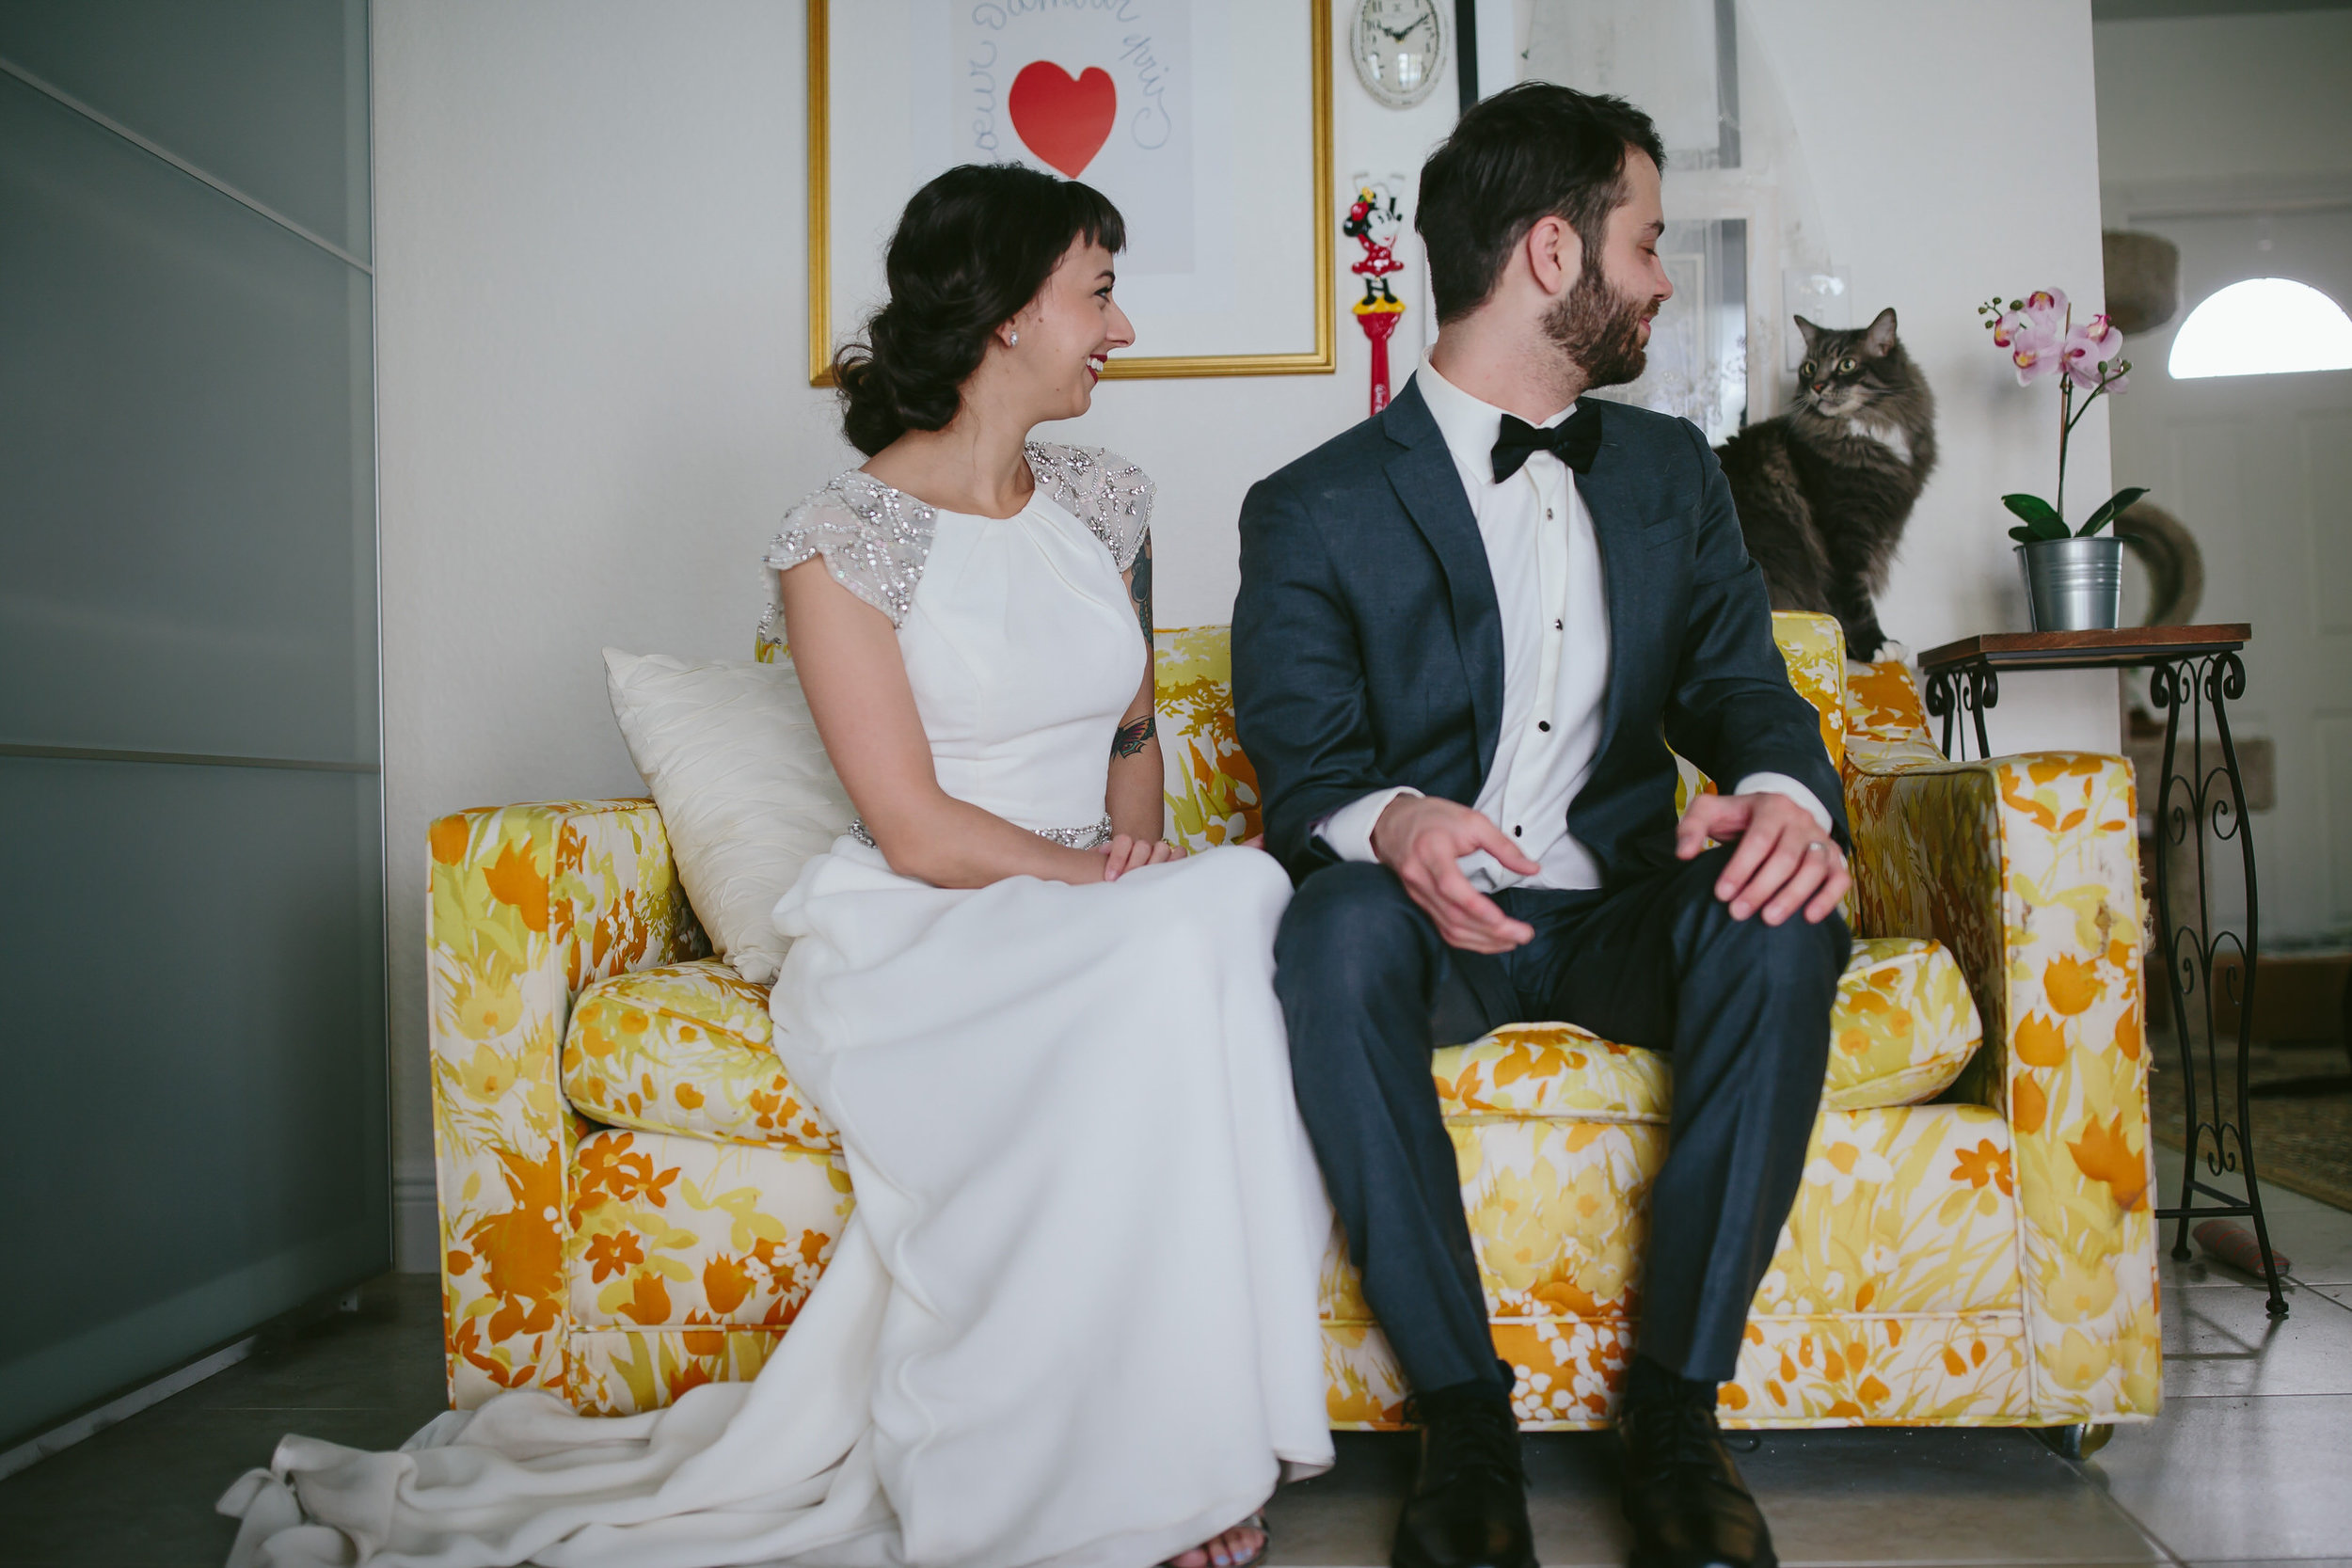 bride_and_groom_cats_in_home_session_wedding_fort_lauderdale_photographer_steph_lynn_photo-25.jpg